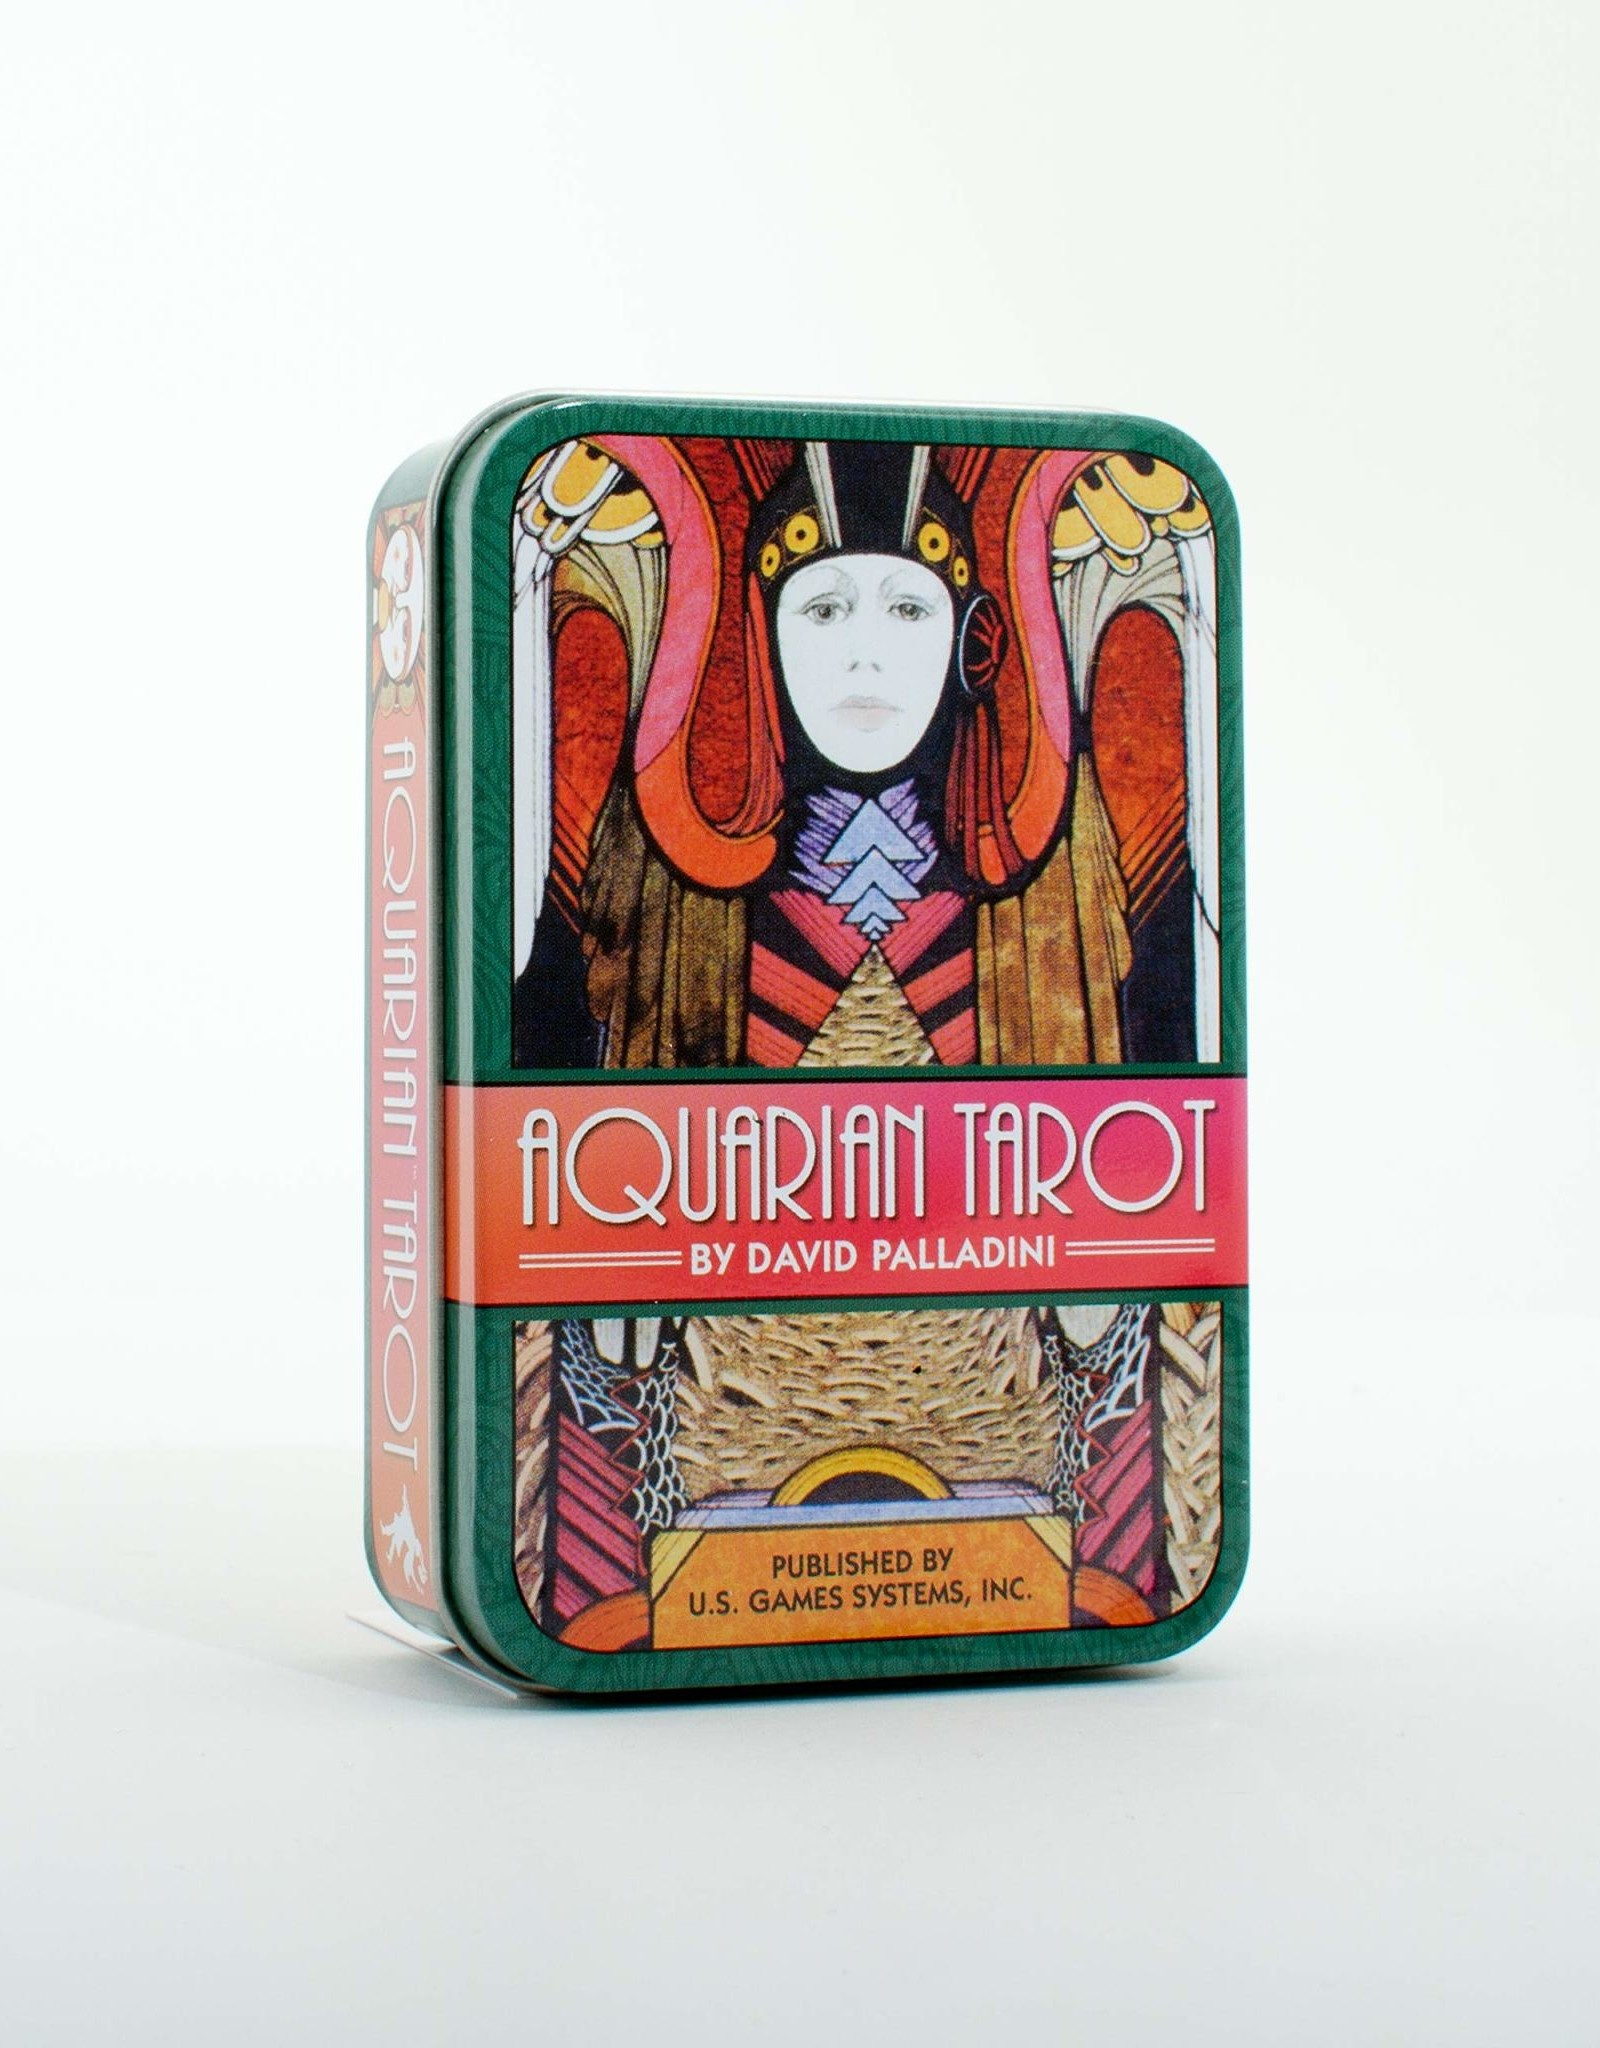 David Palladini Aquarian Tarot in a Tin by David Palladini